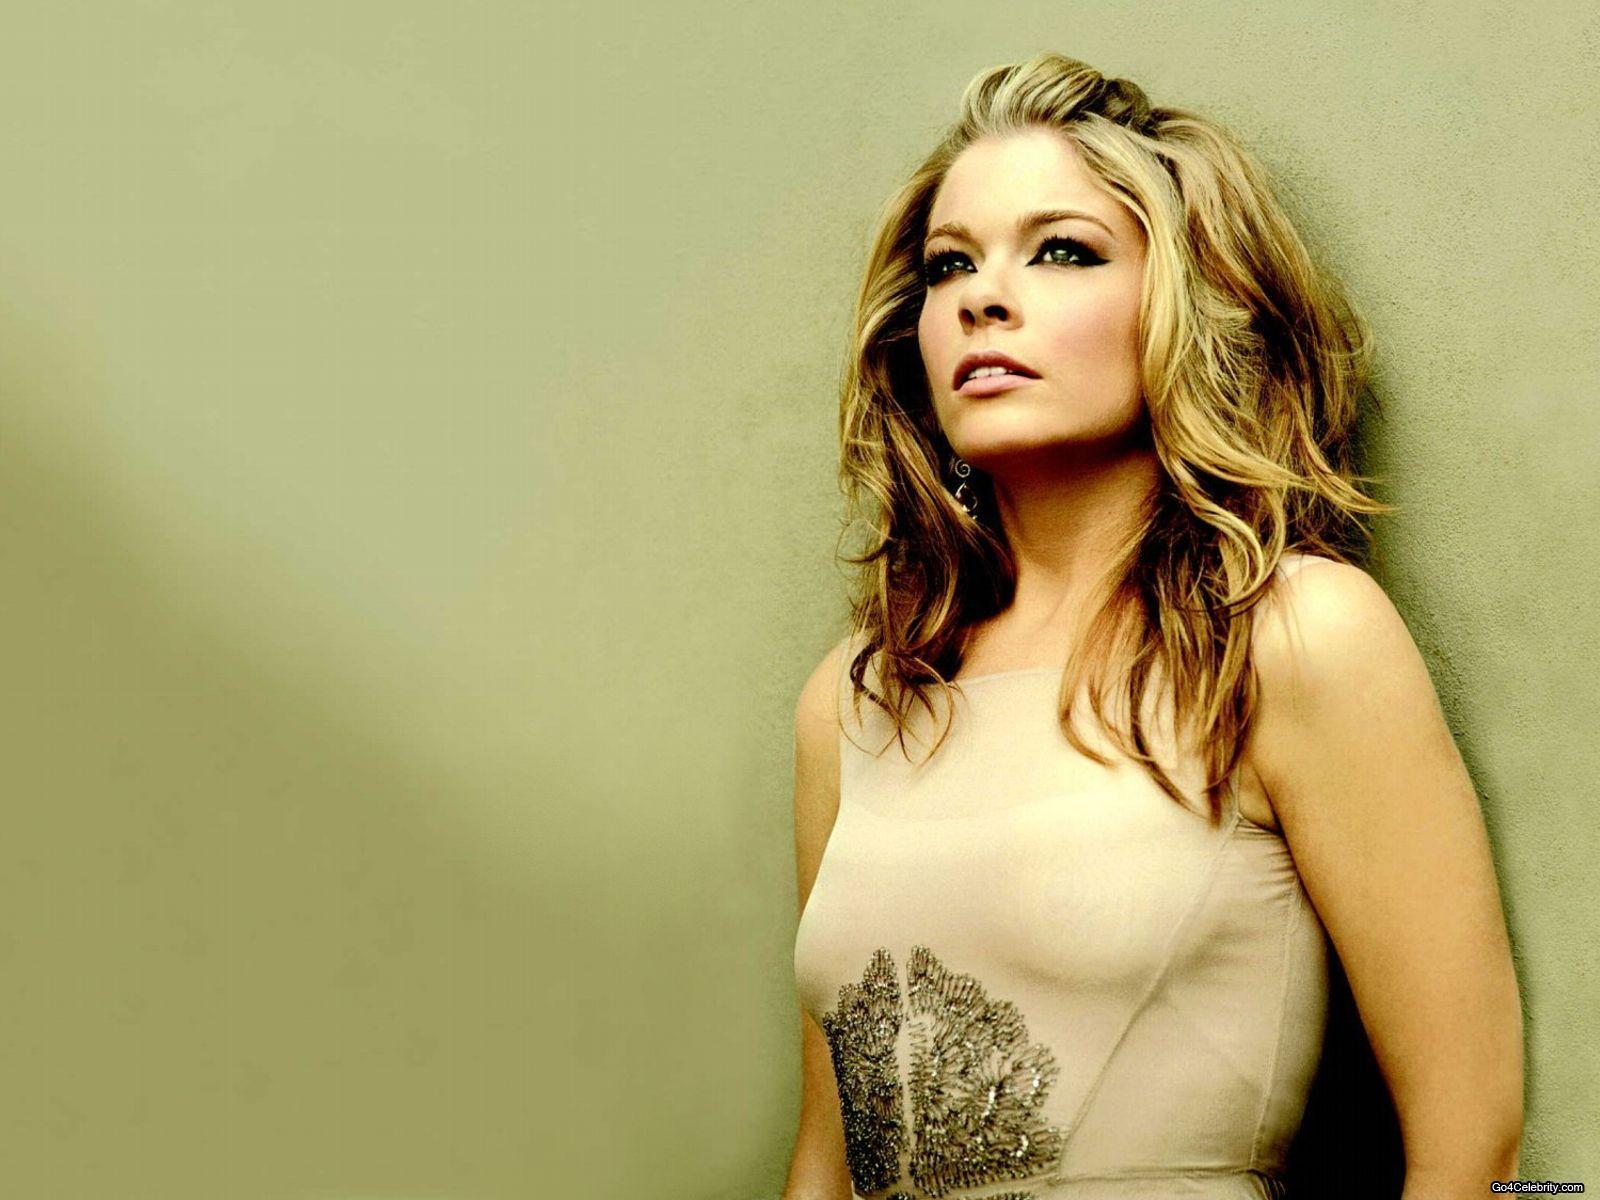 Chatter Busy: LeAnn Rimes Quotes